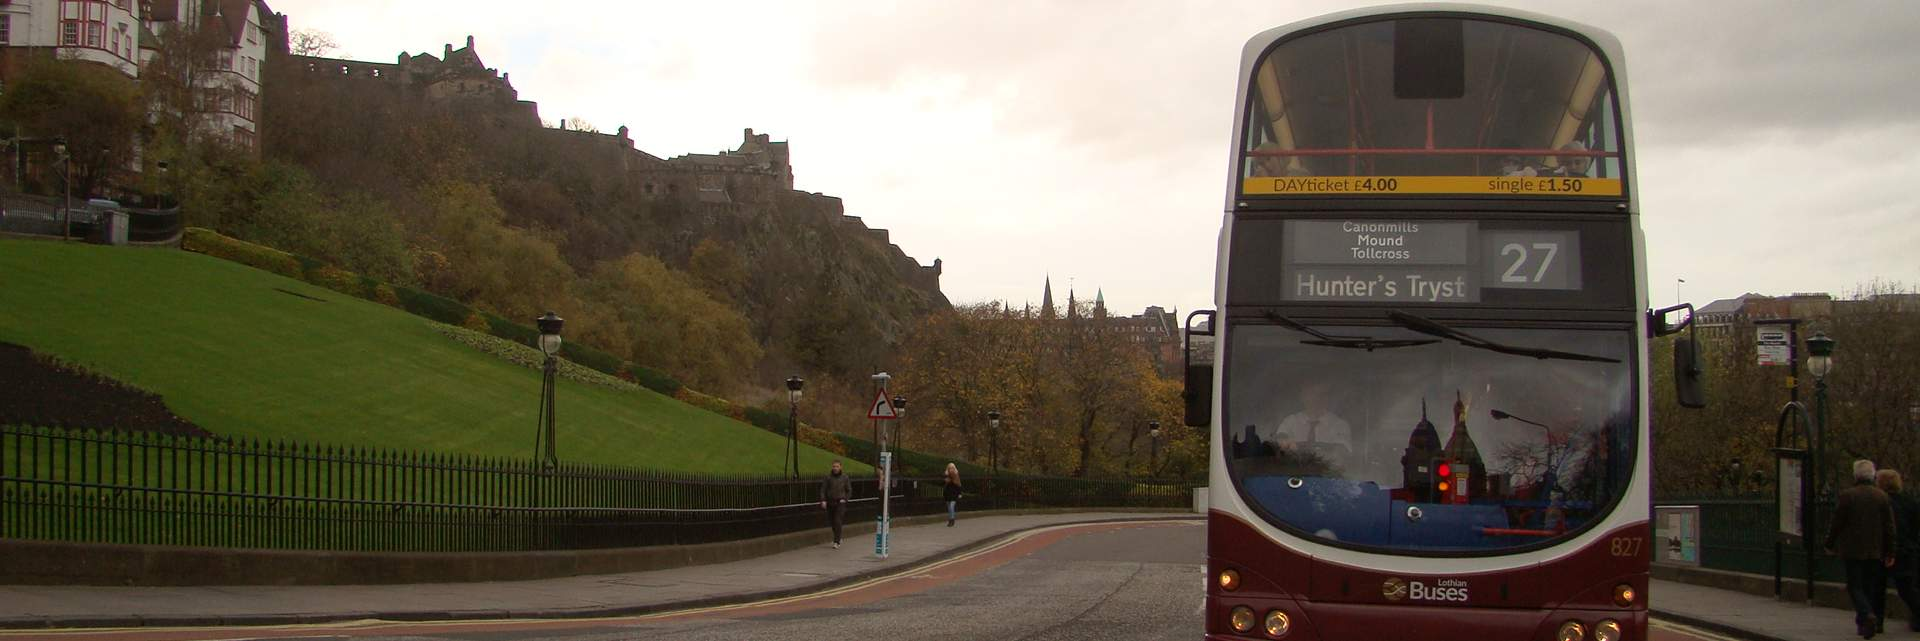 Discover Scotland by Bus